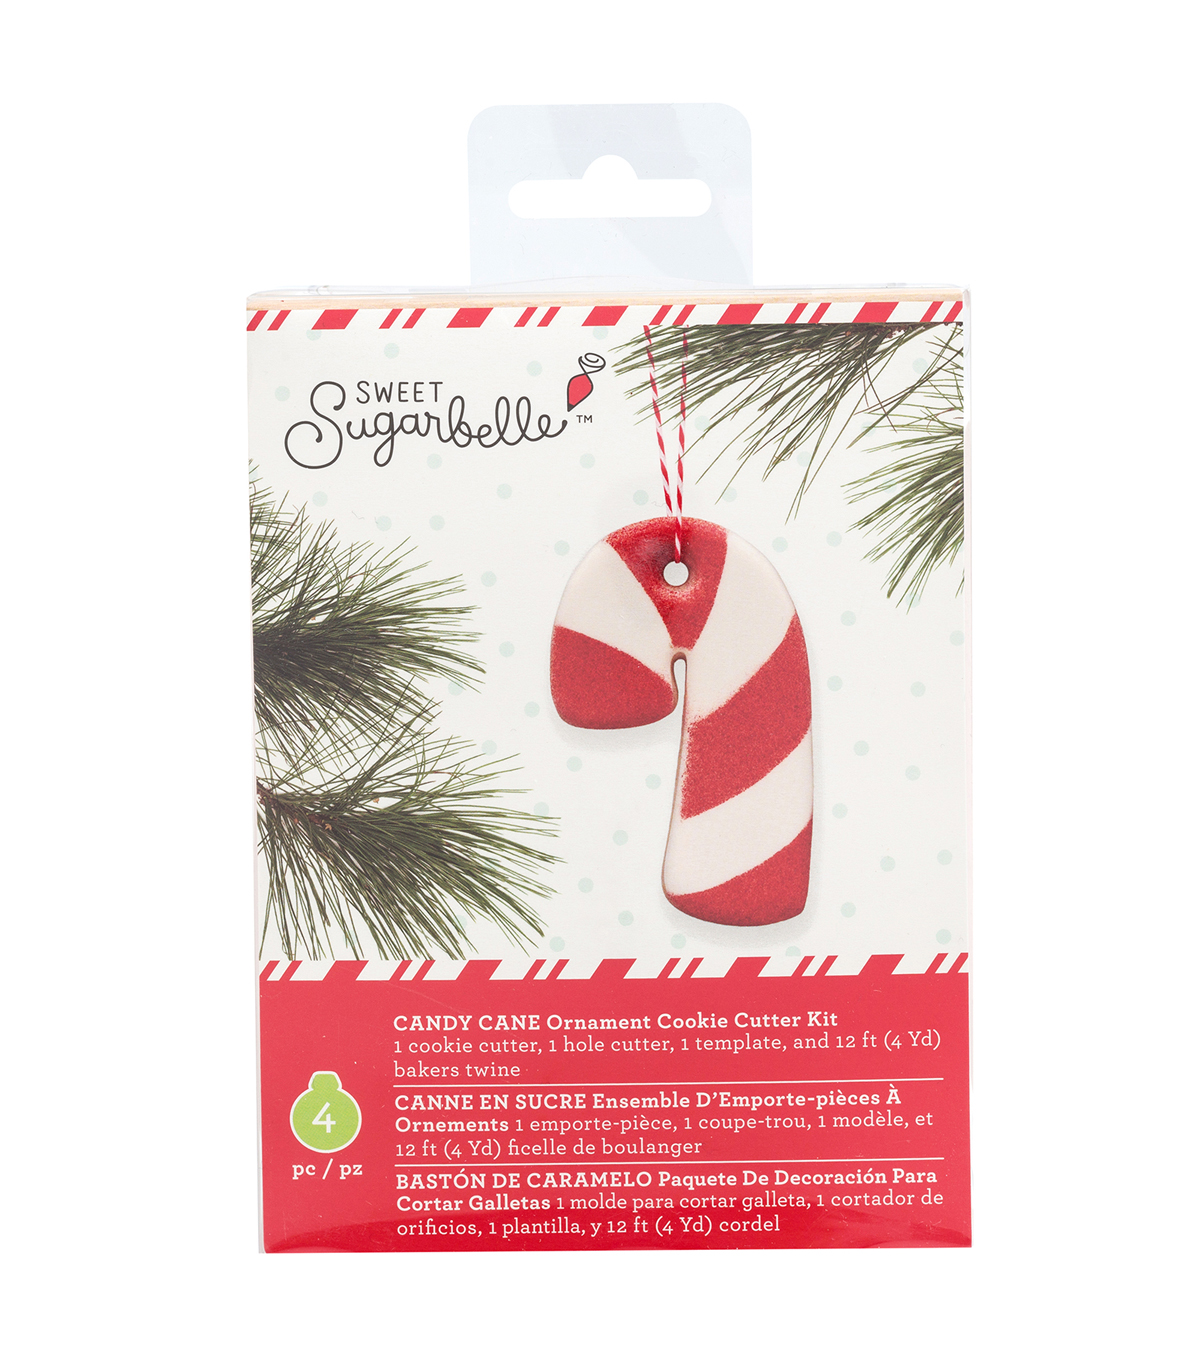 sweet sugarbelle christmas ornament cookie cutter kit candy cane